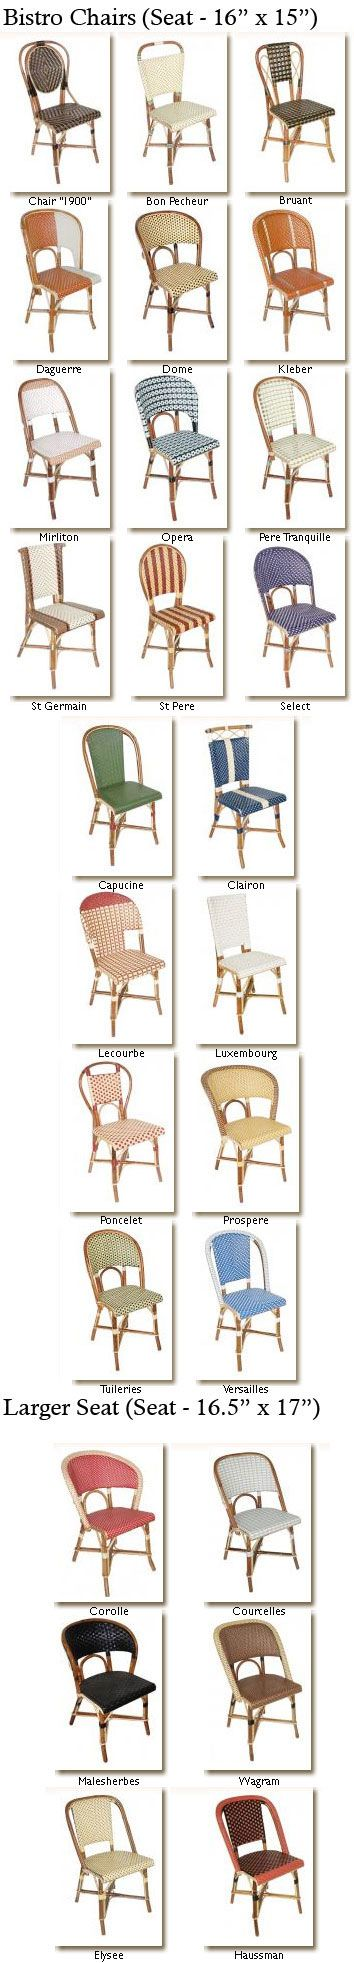 Most wanted chairs for my kitchen